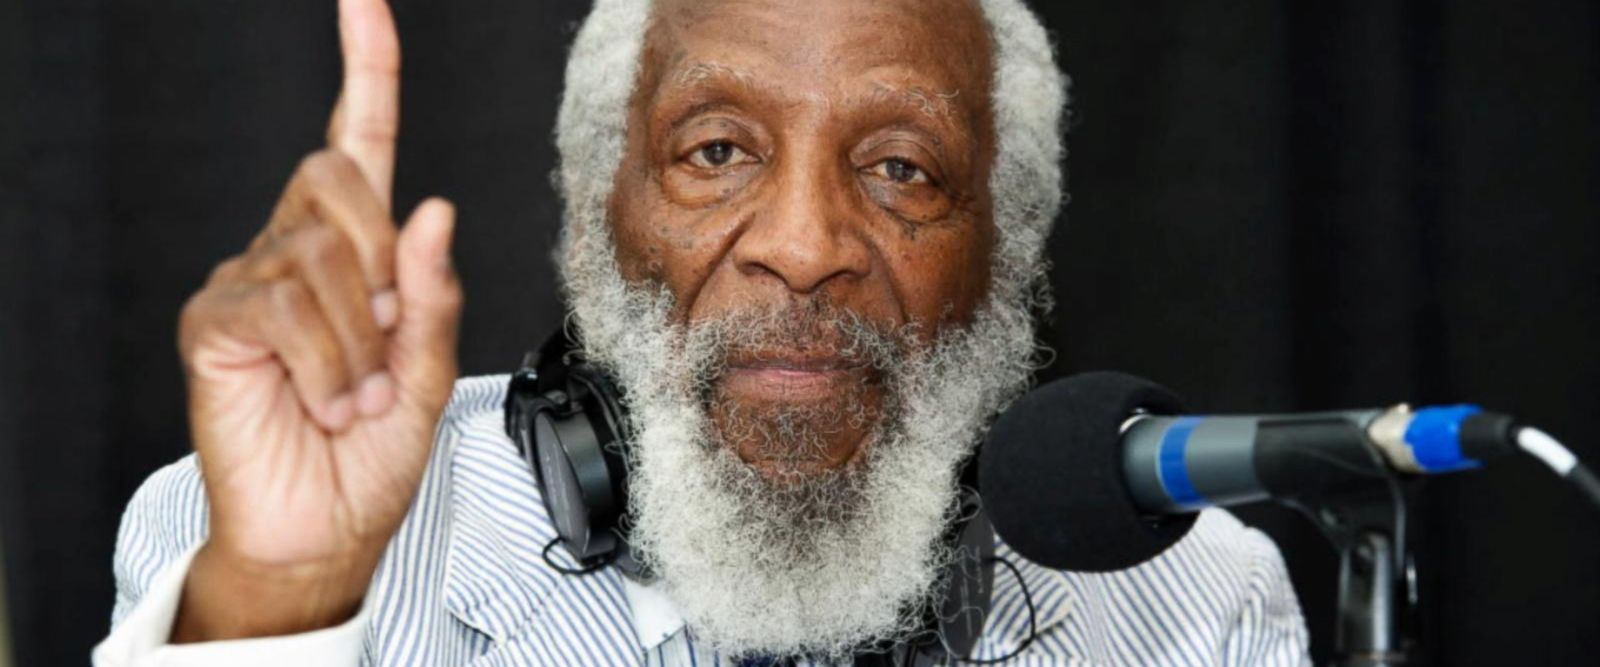 VIDEO: Remembering activist and comedian Dick Gregory